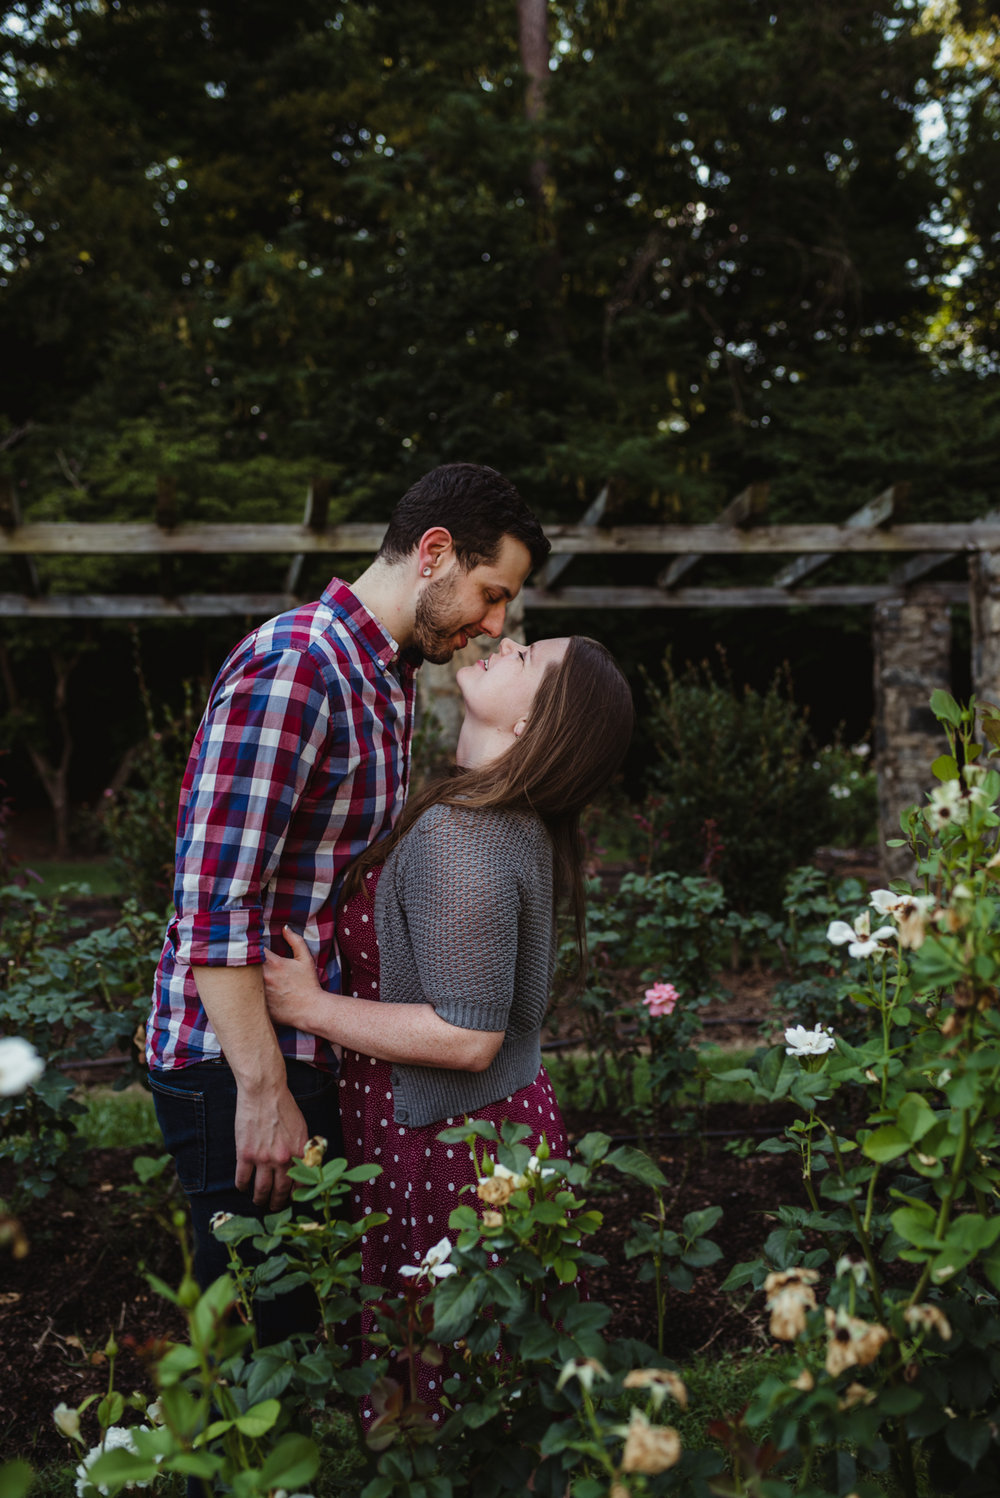 The bride and groom to be look at each other while at the Raleigh Rose Garden during their engagement session with Rose Trail Images.